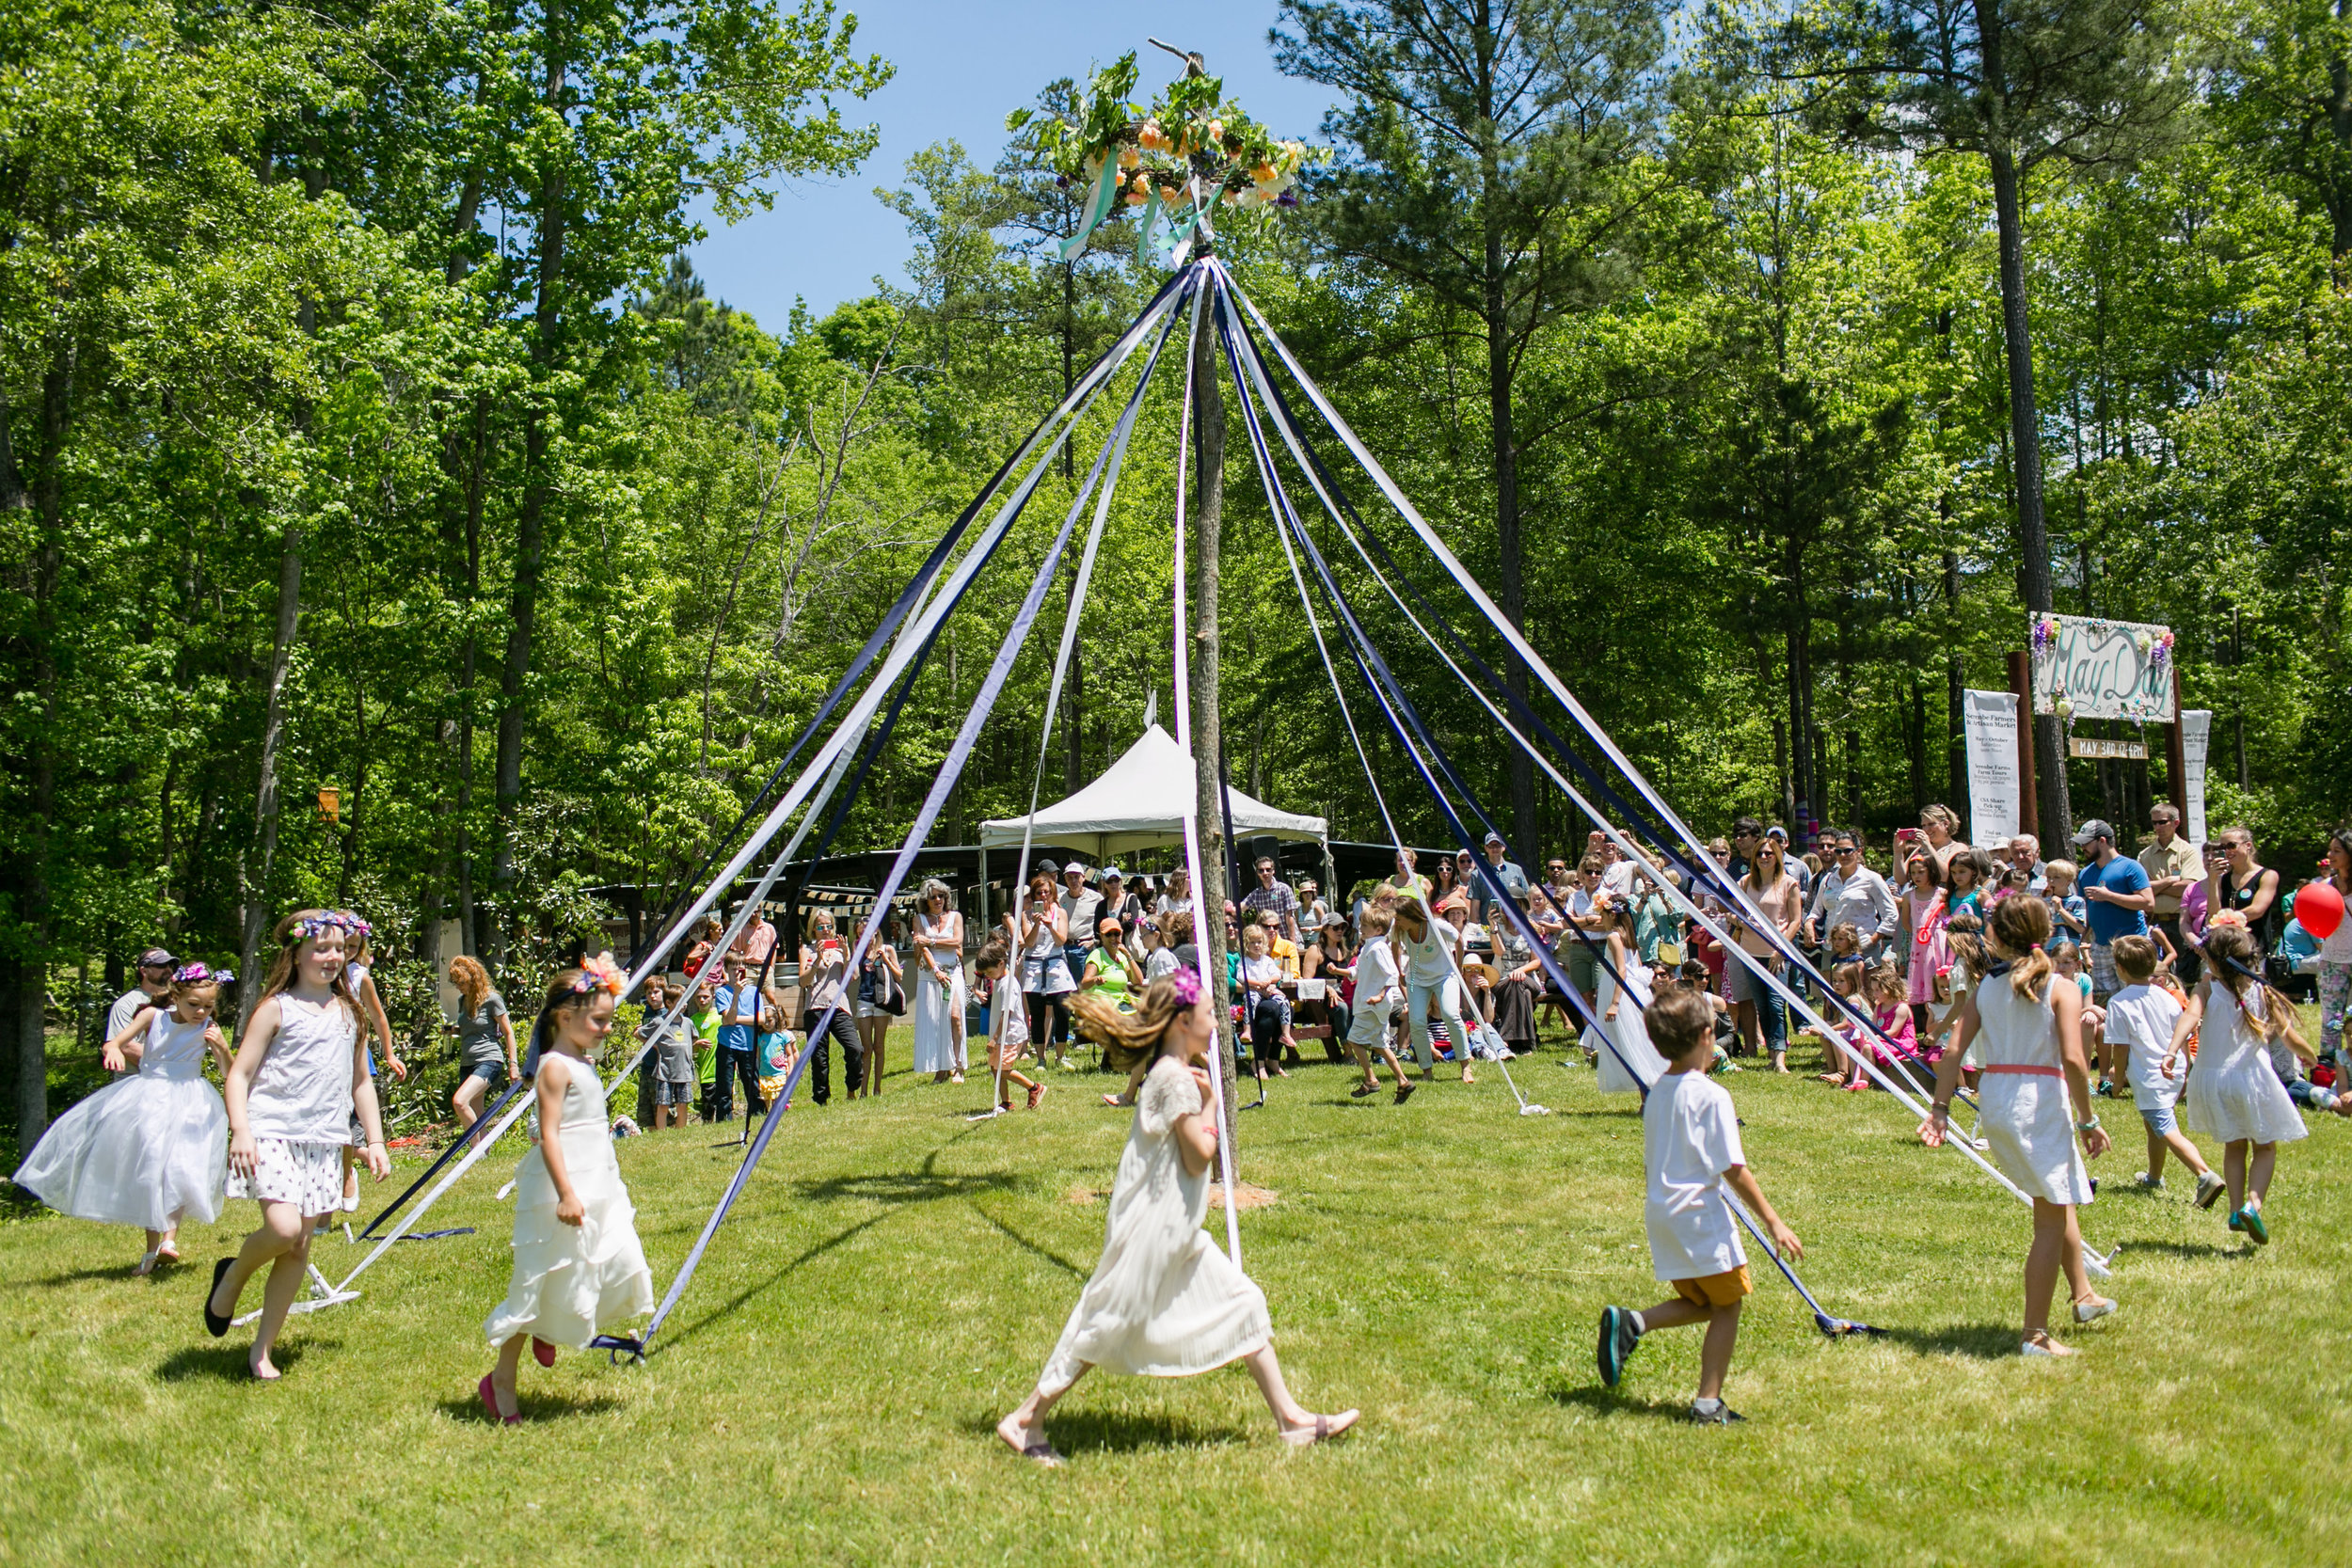 - Serenbe's Spring Blooms & Scenic Views Make For A Perfect Festival Backdrop